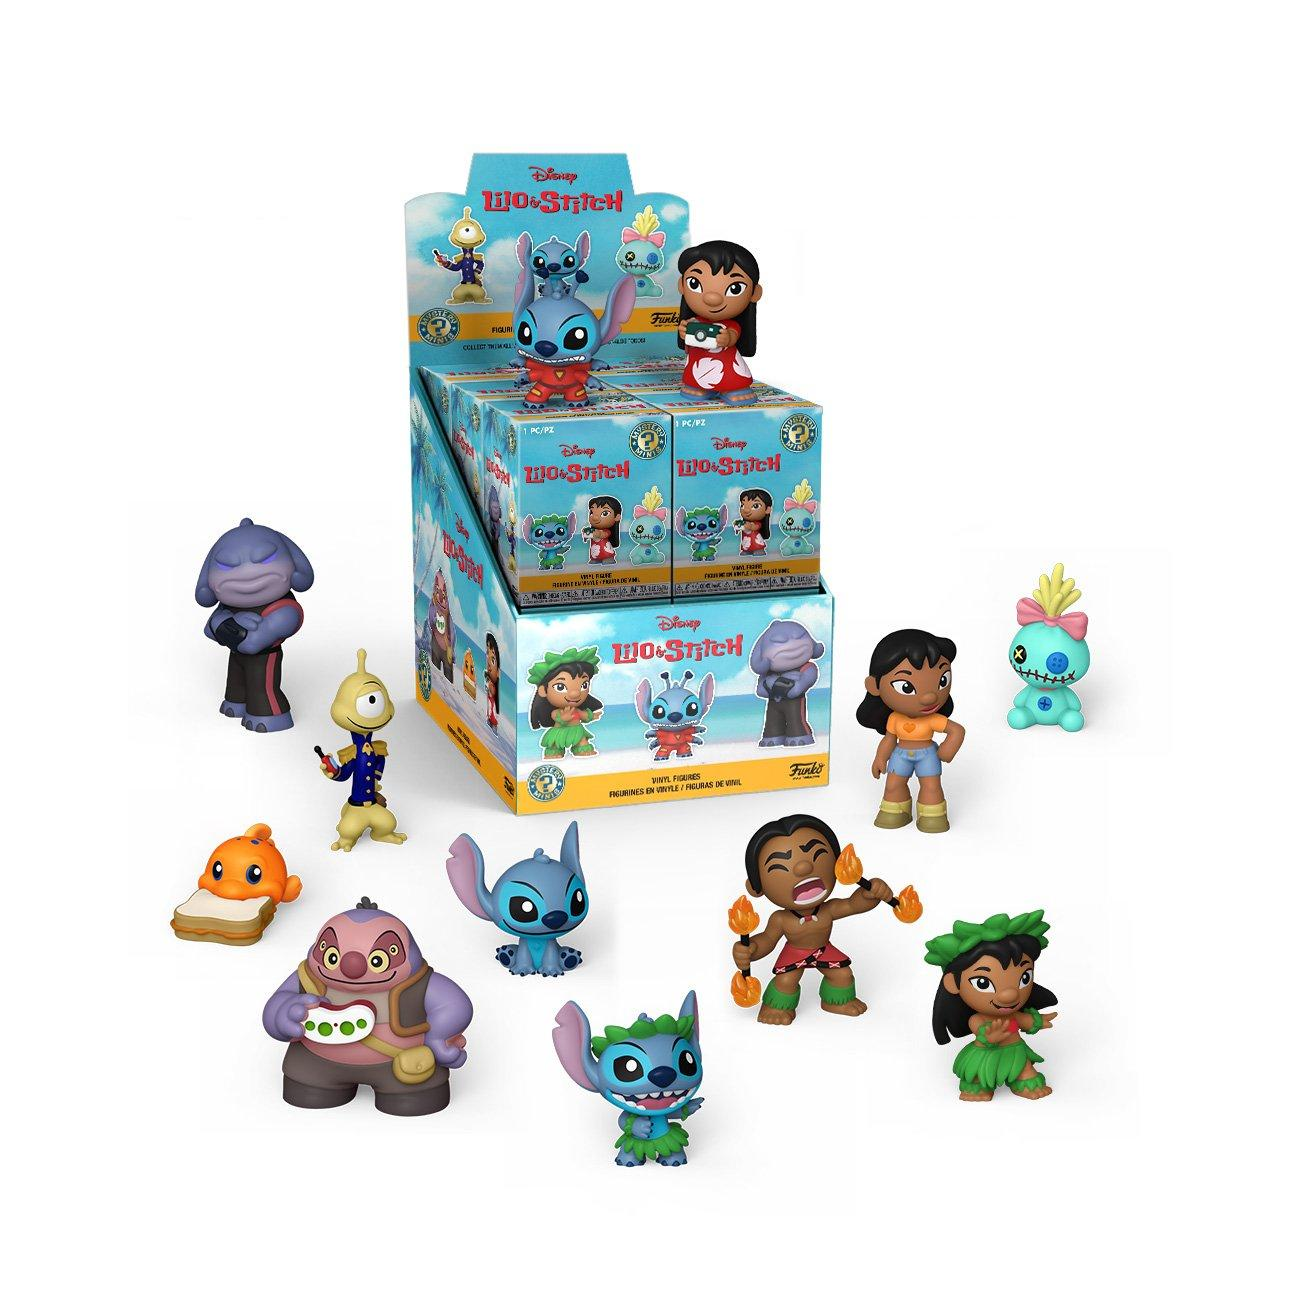 Lilo & Stitch Mystery Minis by Funko [PRE-ORDER EXPECTED SUMMER 2021*] Blind Box Funko